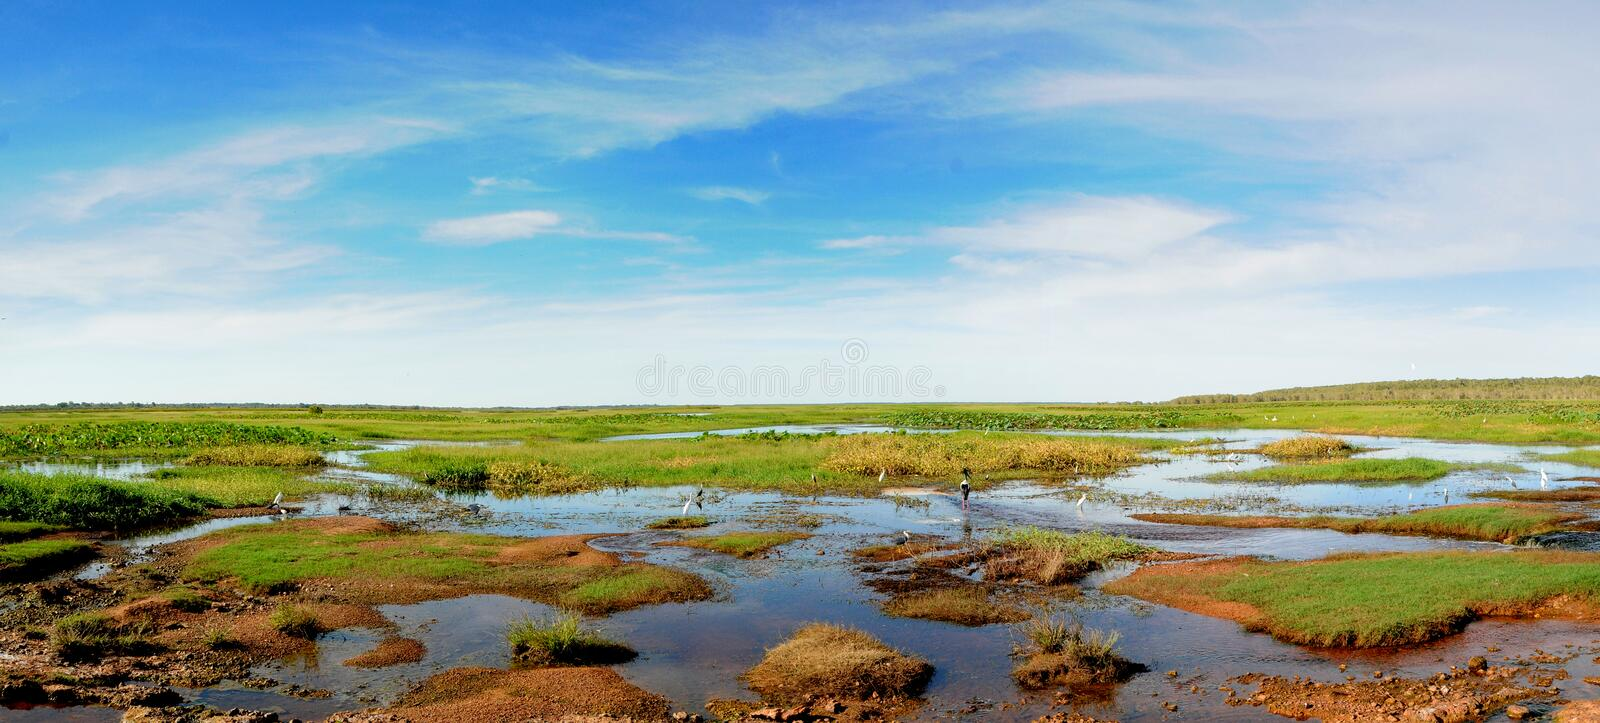 Wetlands royalty free stock image